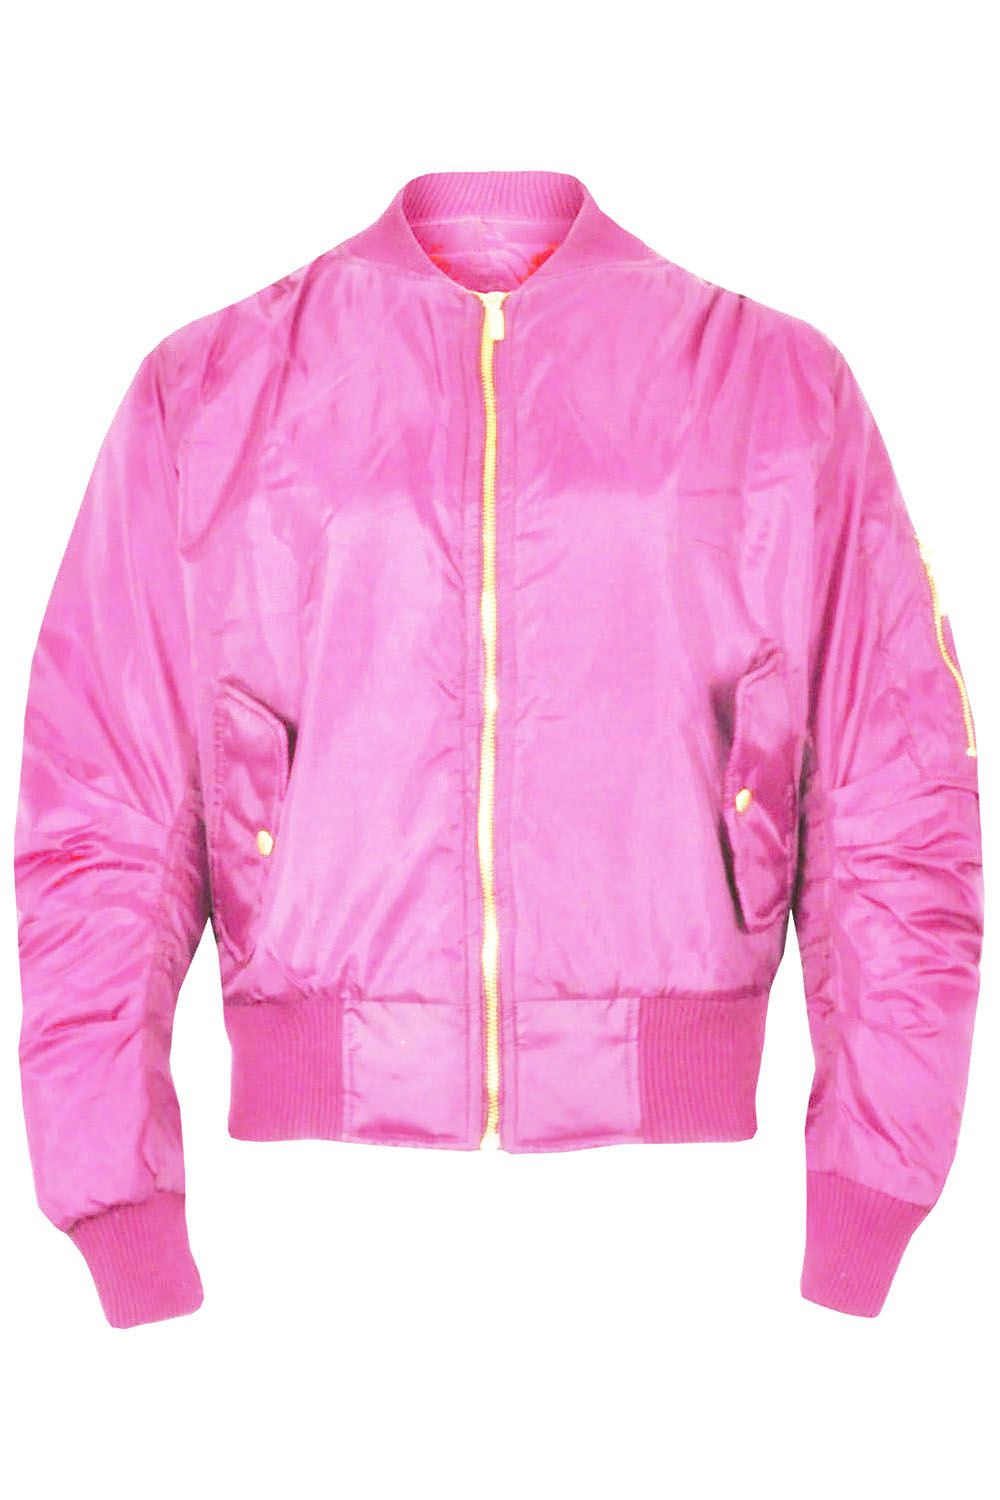 Kids Pink Blazer, Wholesale Various High Quality Kids Pink Blazer Products from Global Kids Pink Blazer Suppliers and Kids Pink Blazer Factory,Importer,Exporter at multiformo.tk